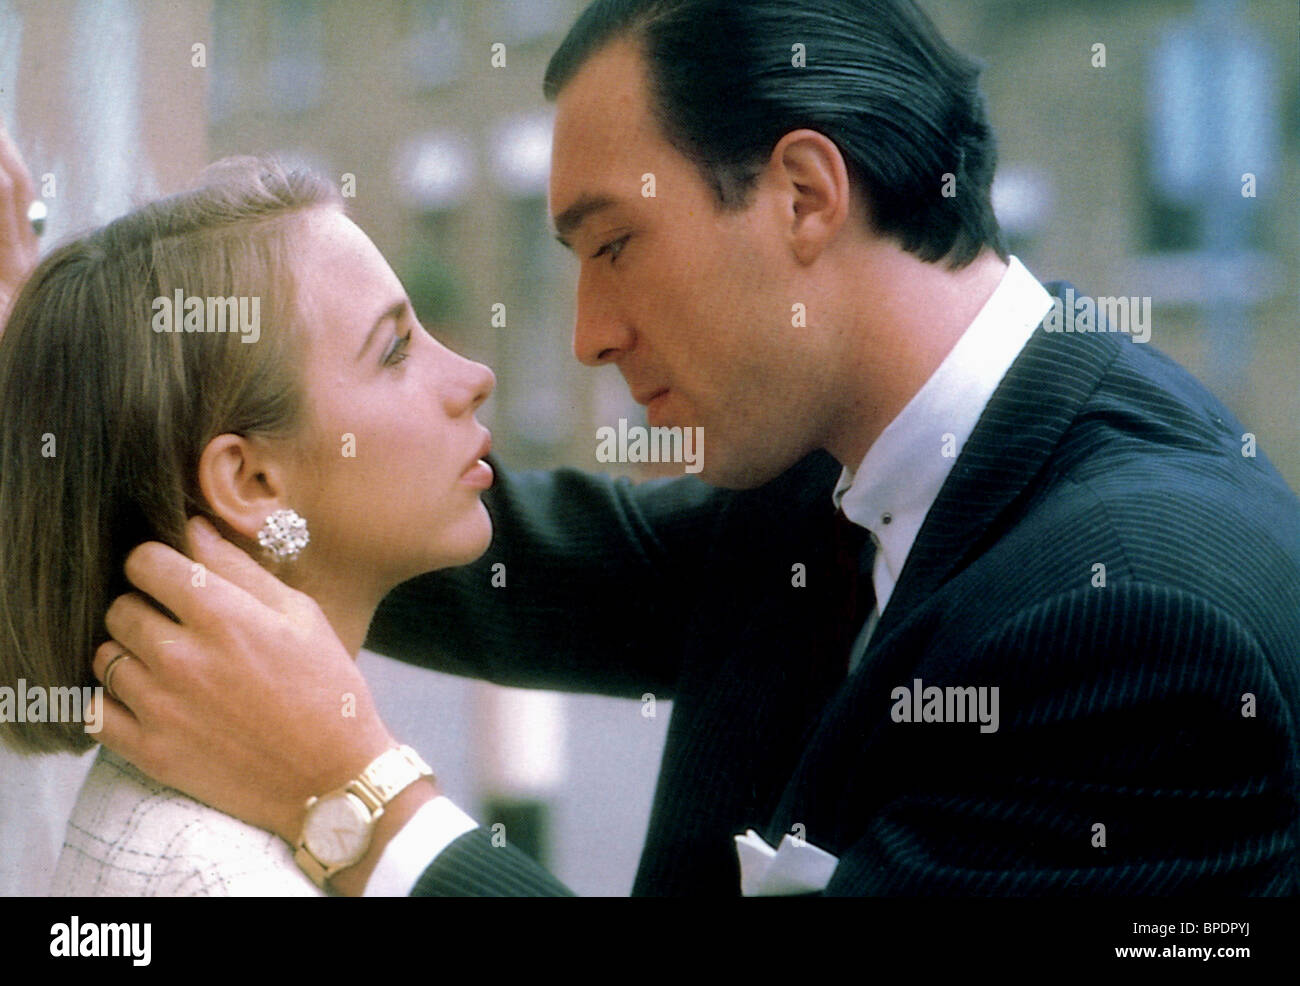 KATE HARDIE, MARTIN KEMP, THE KRAYS, 1990 - Stock Image